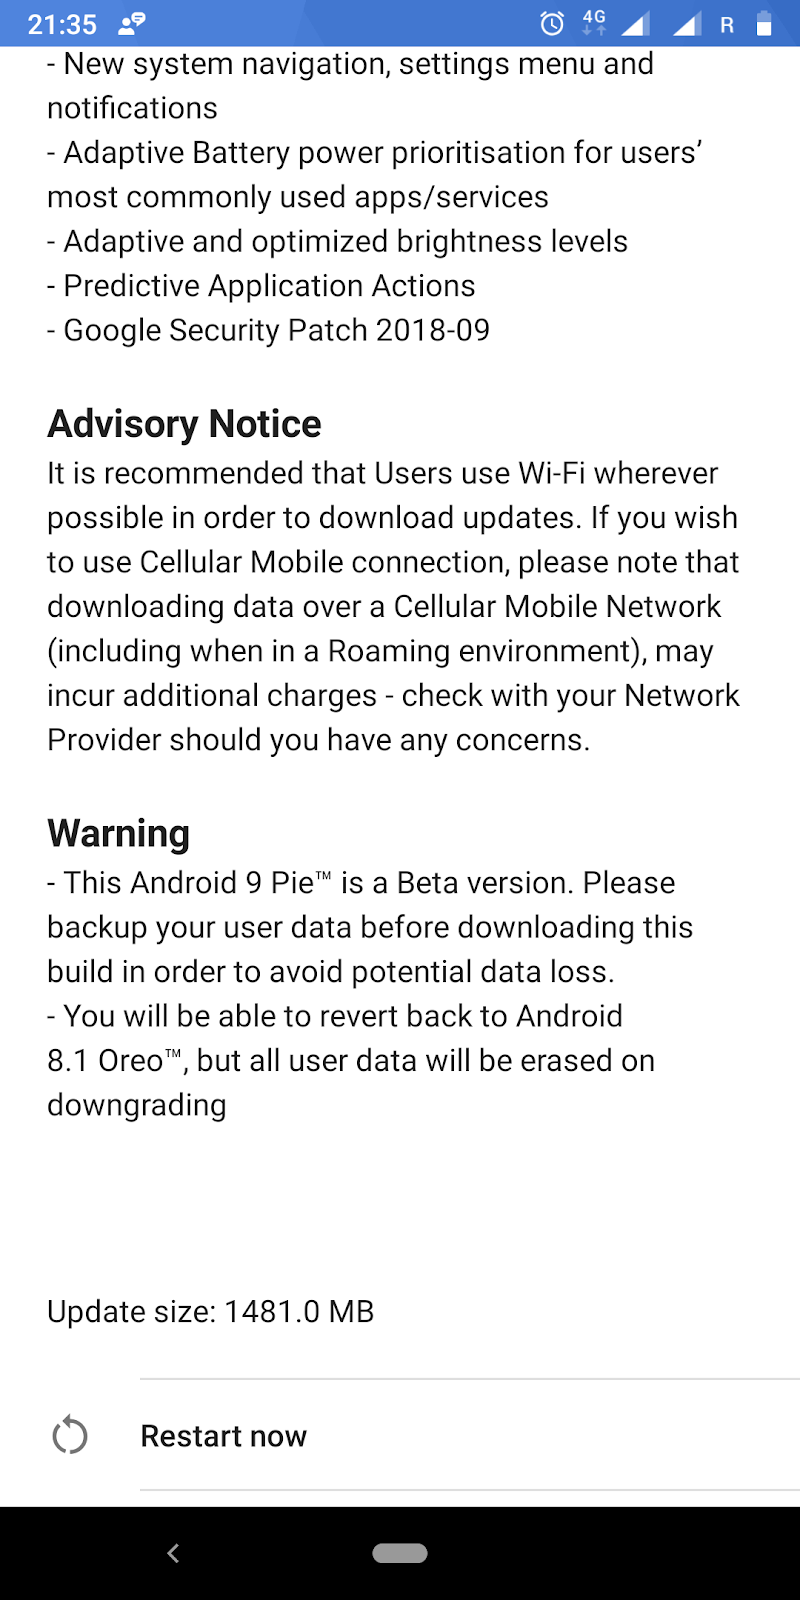 Nokia 7 Plus Receives Android 9 Pie Beta(V3 190) Update With